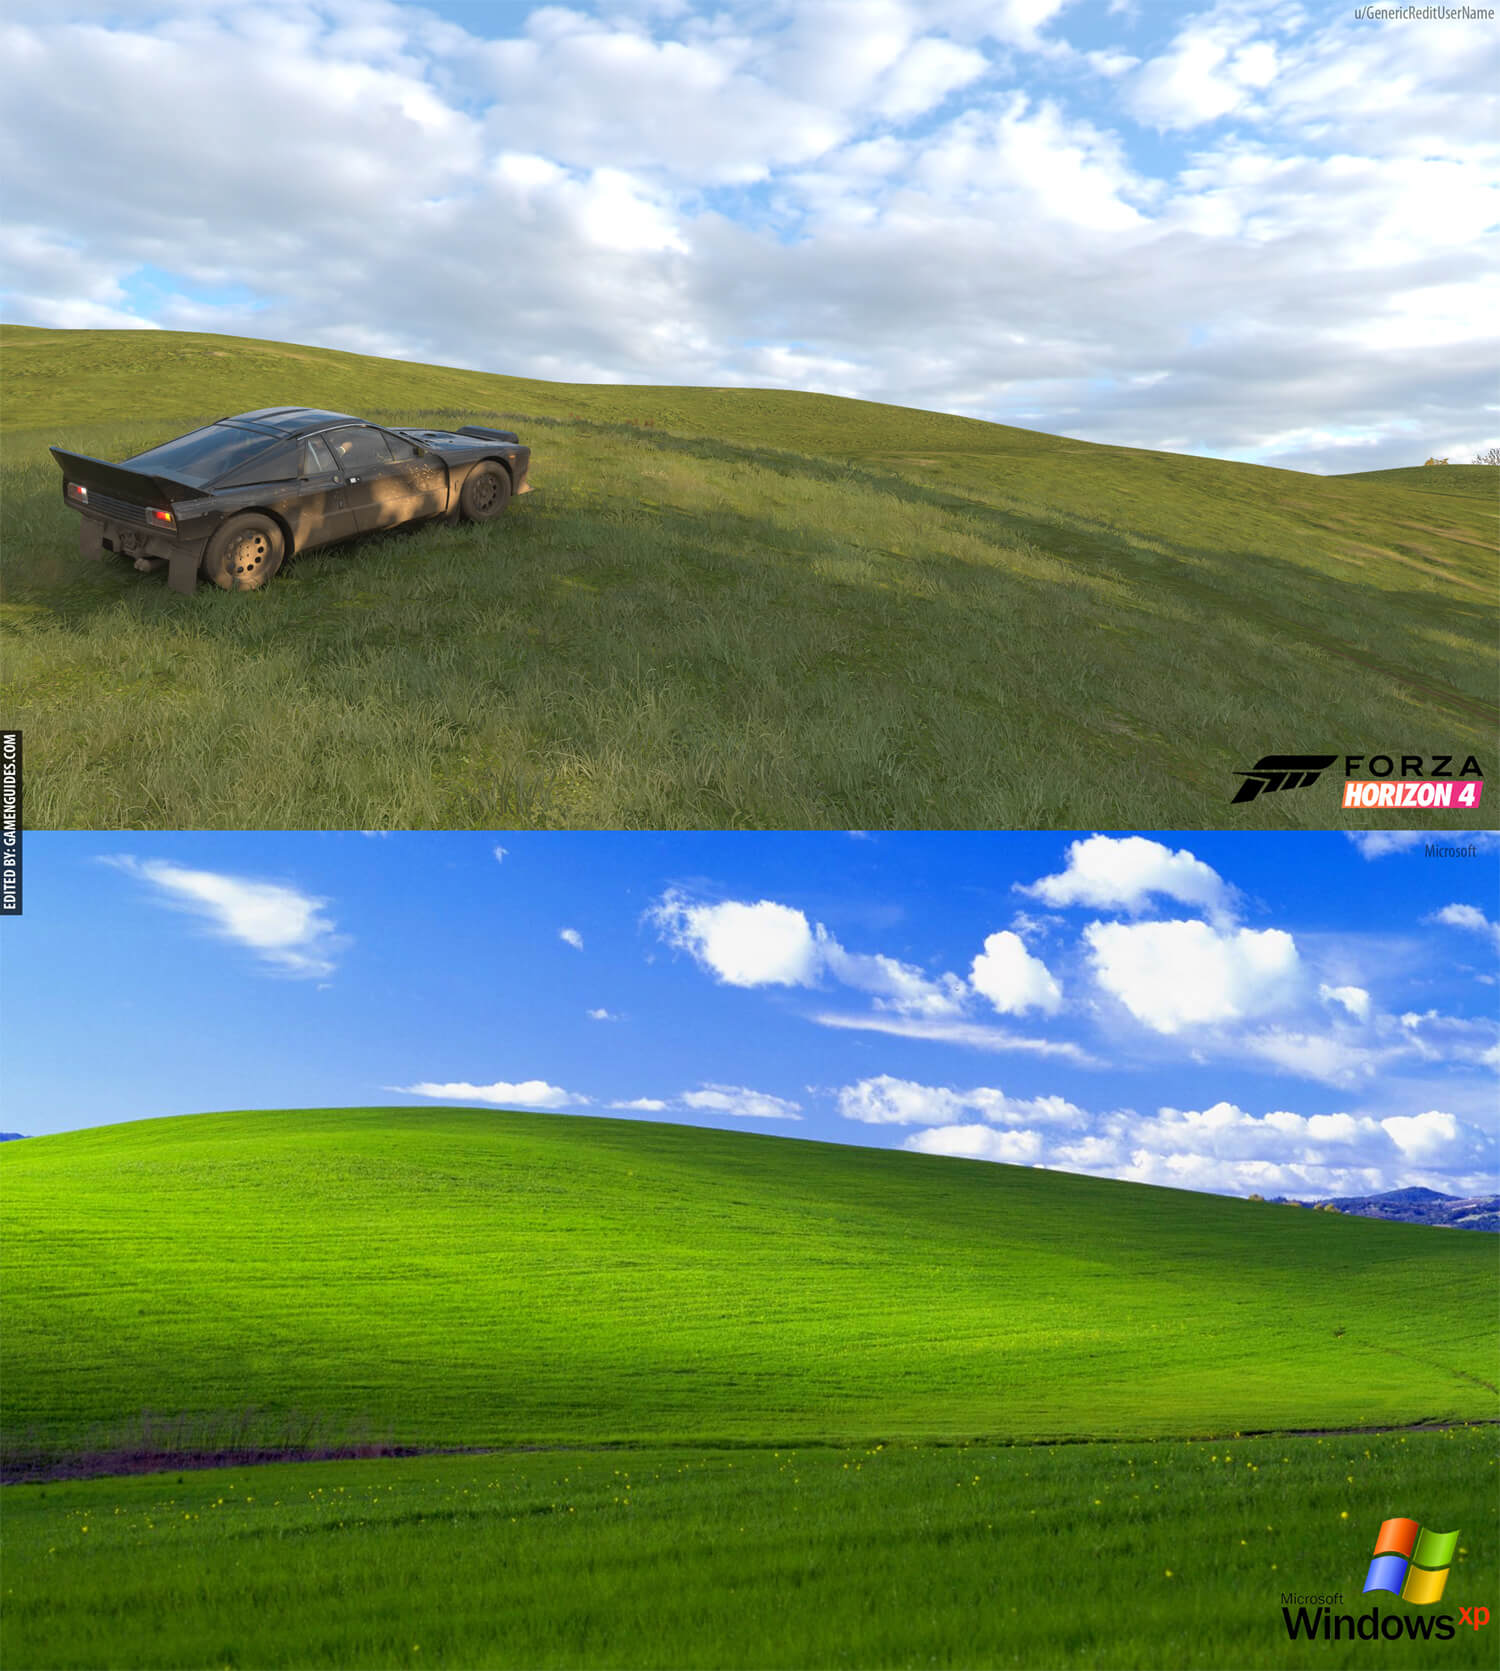 Microsofts Windows XP Default Wallpaper Found In Forza Horizon 4 1500x1671